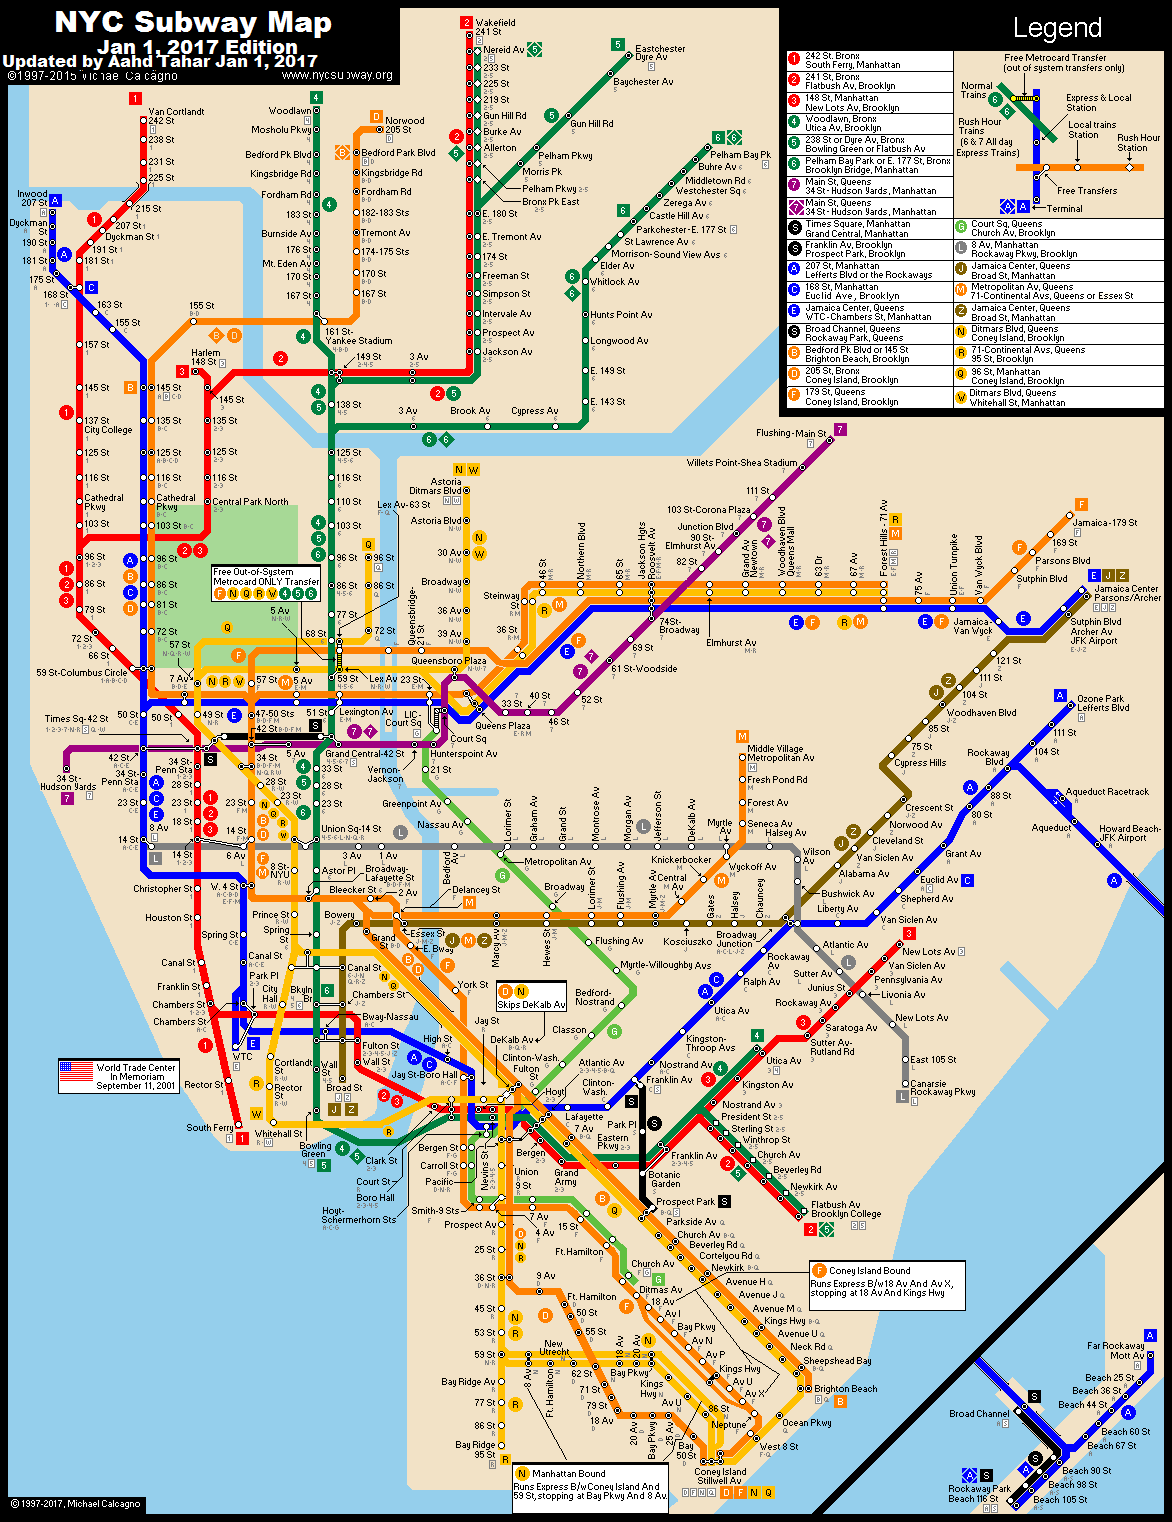 Subway Maps Of New York